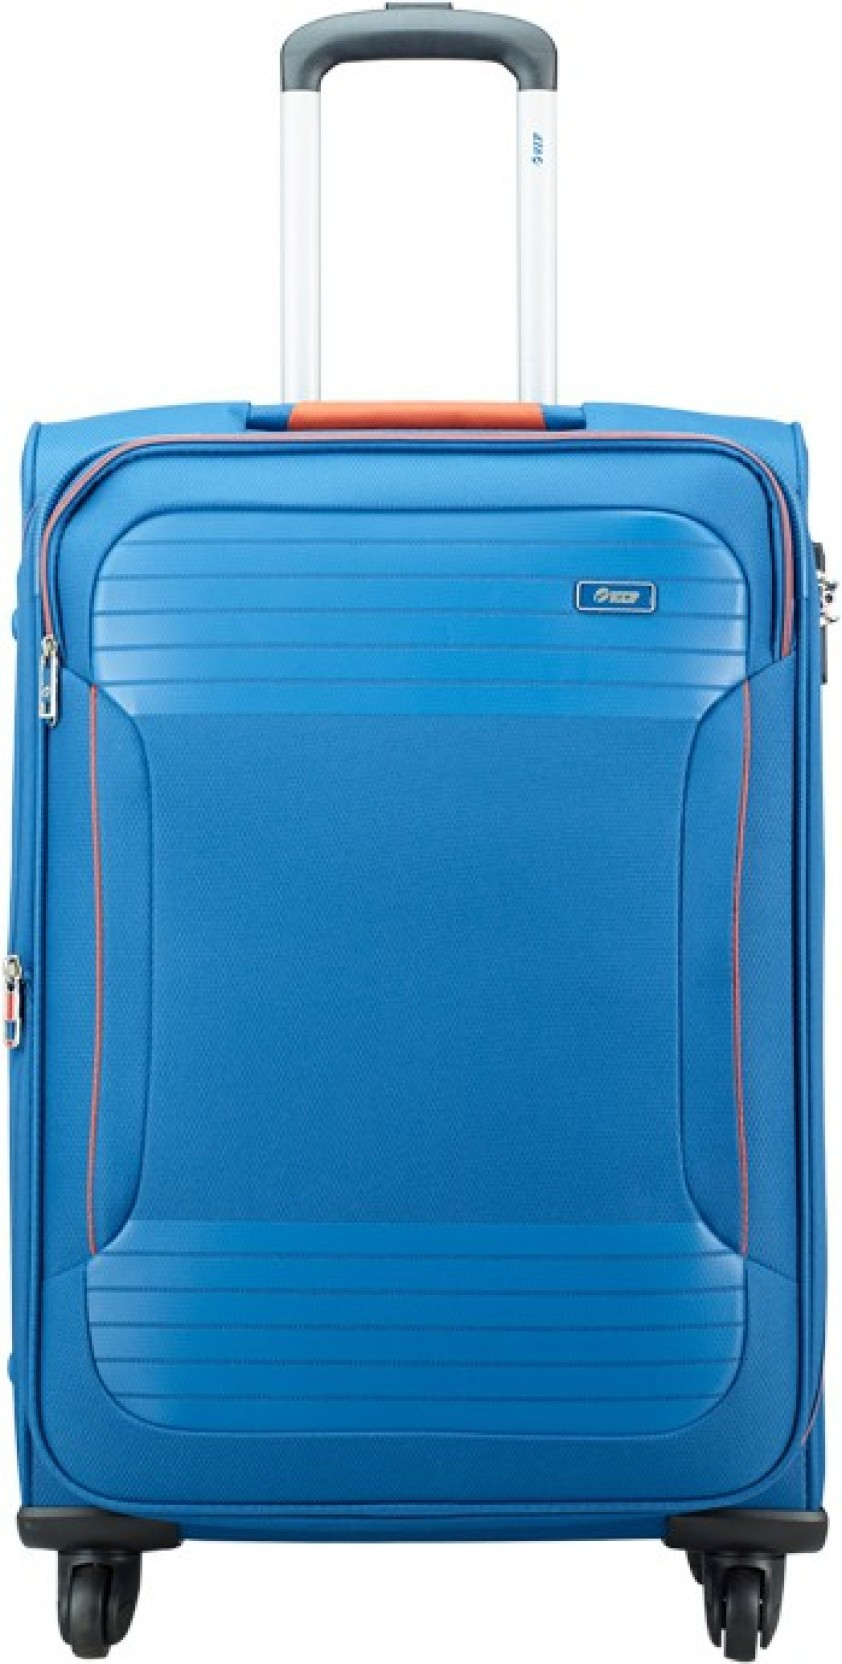 VIP ZANE 4W EXP STROLLY 69 MARINE BLUE Expandable Check-in Luggage - 28 inch